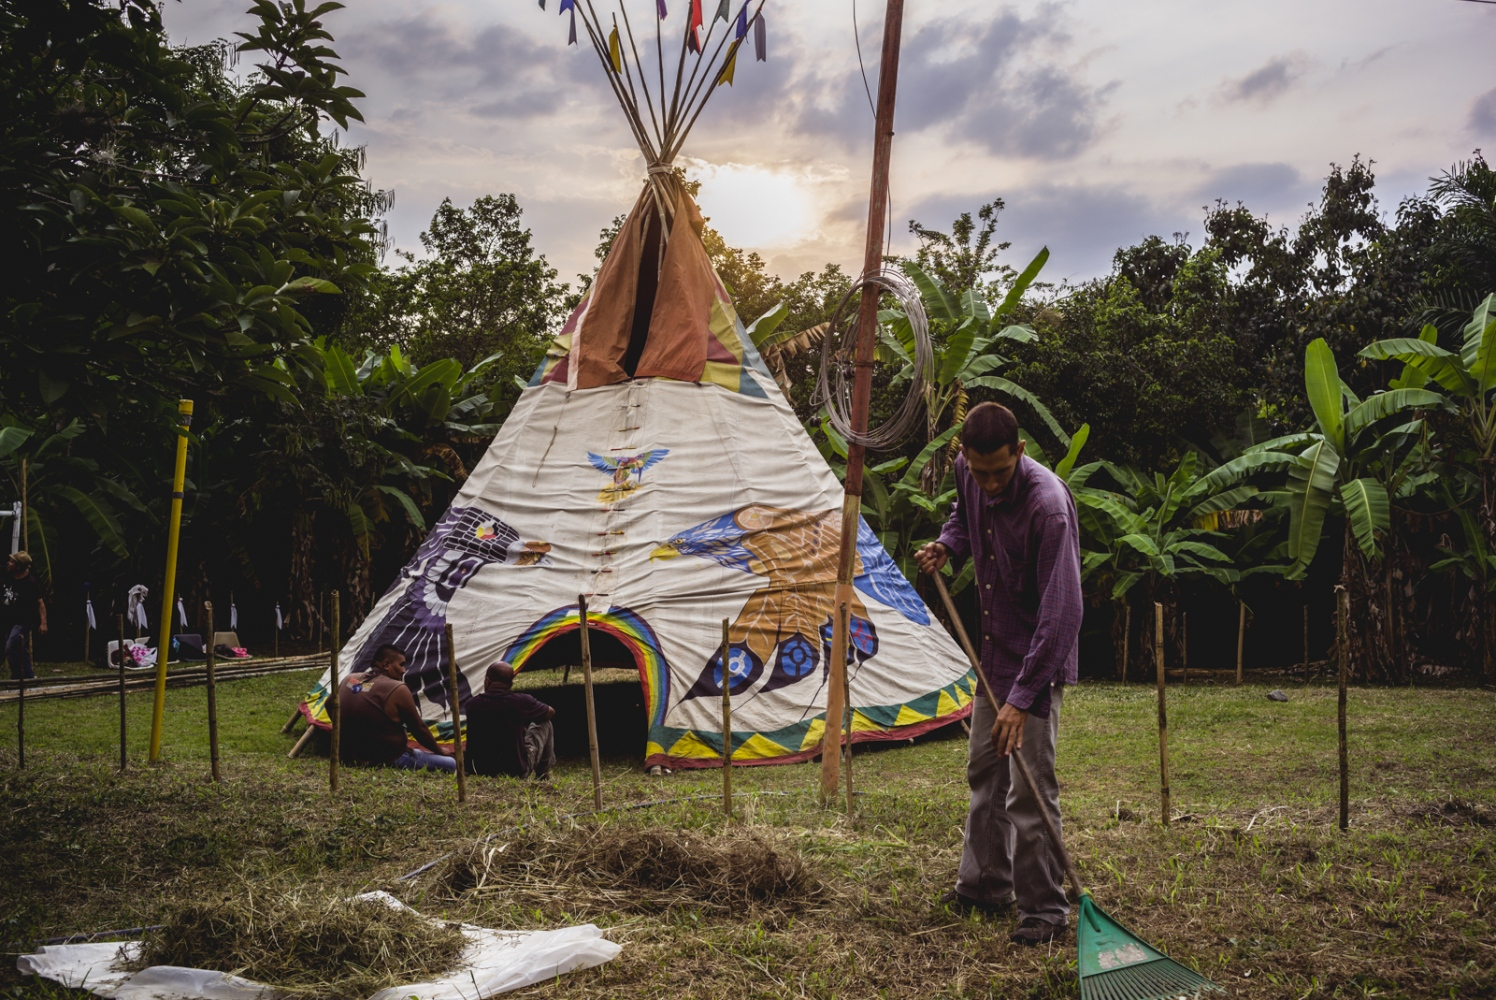 Alejandro rakes the camp grounds in preparation for the Vision Quest as the sun sets over the tipi and jungle forage.